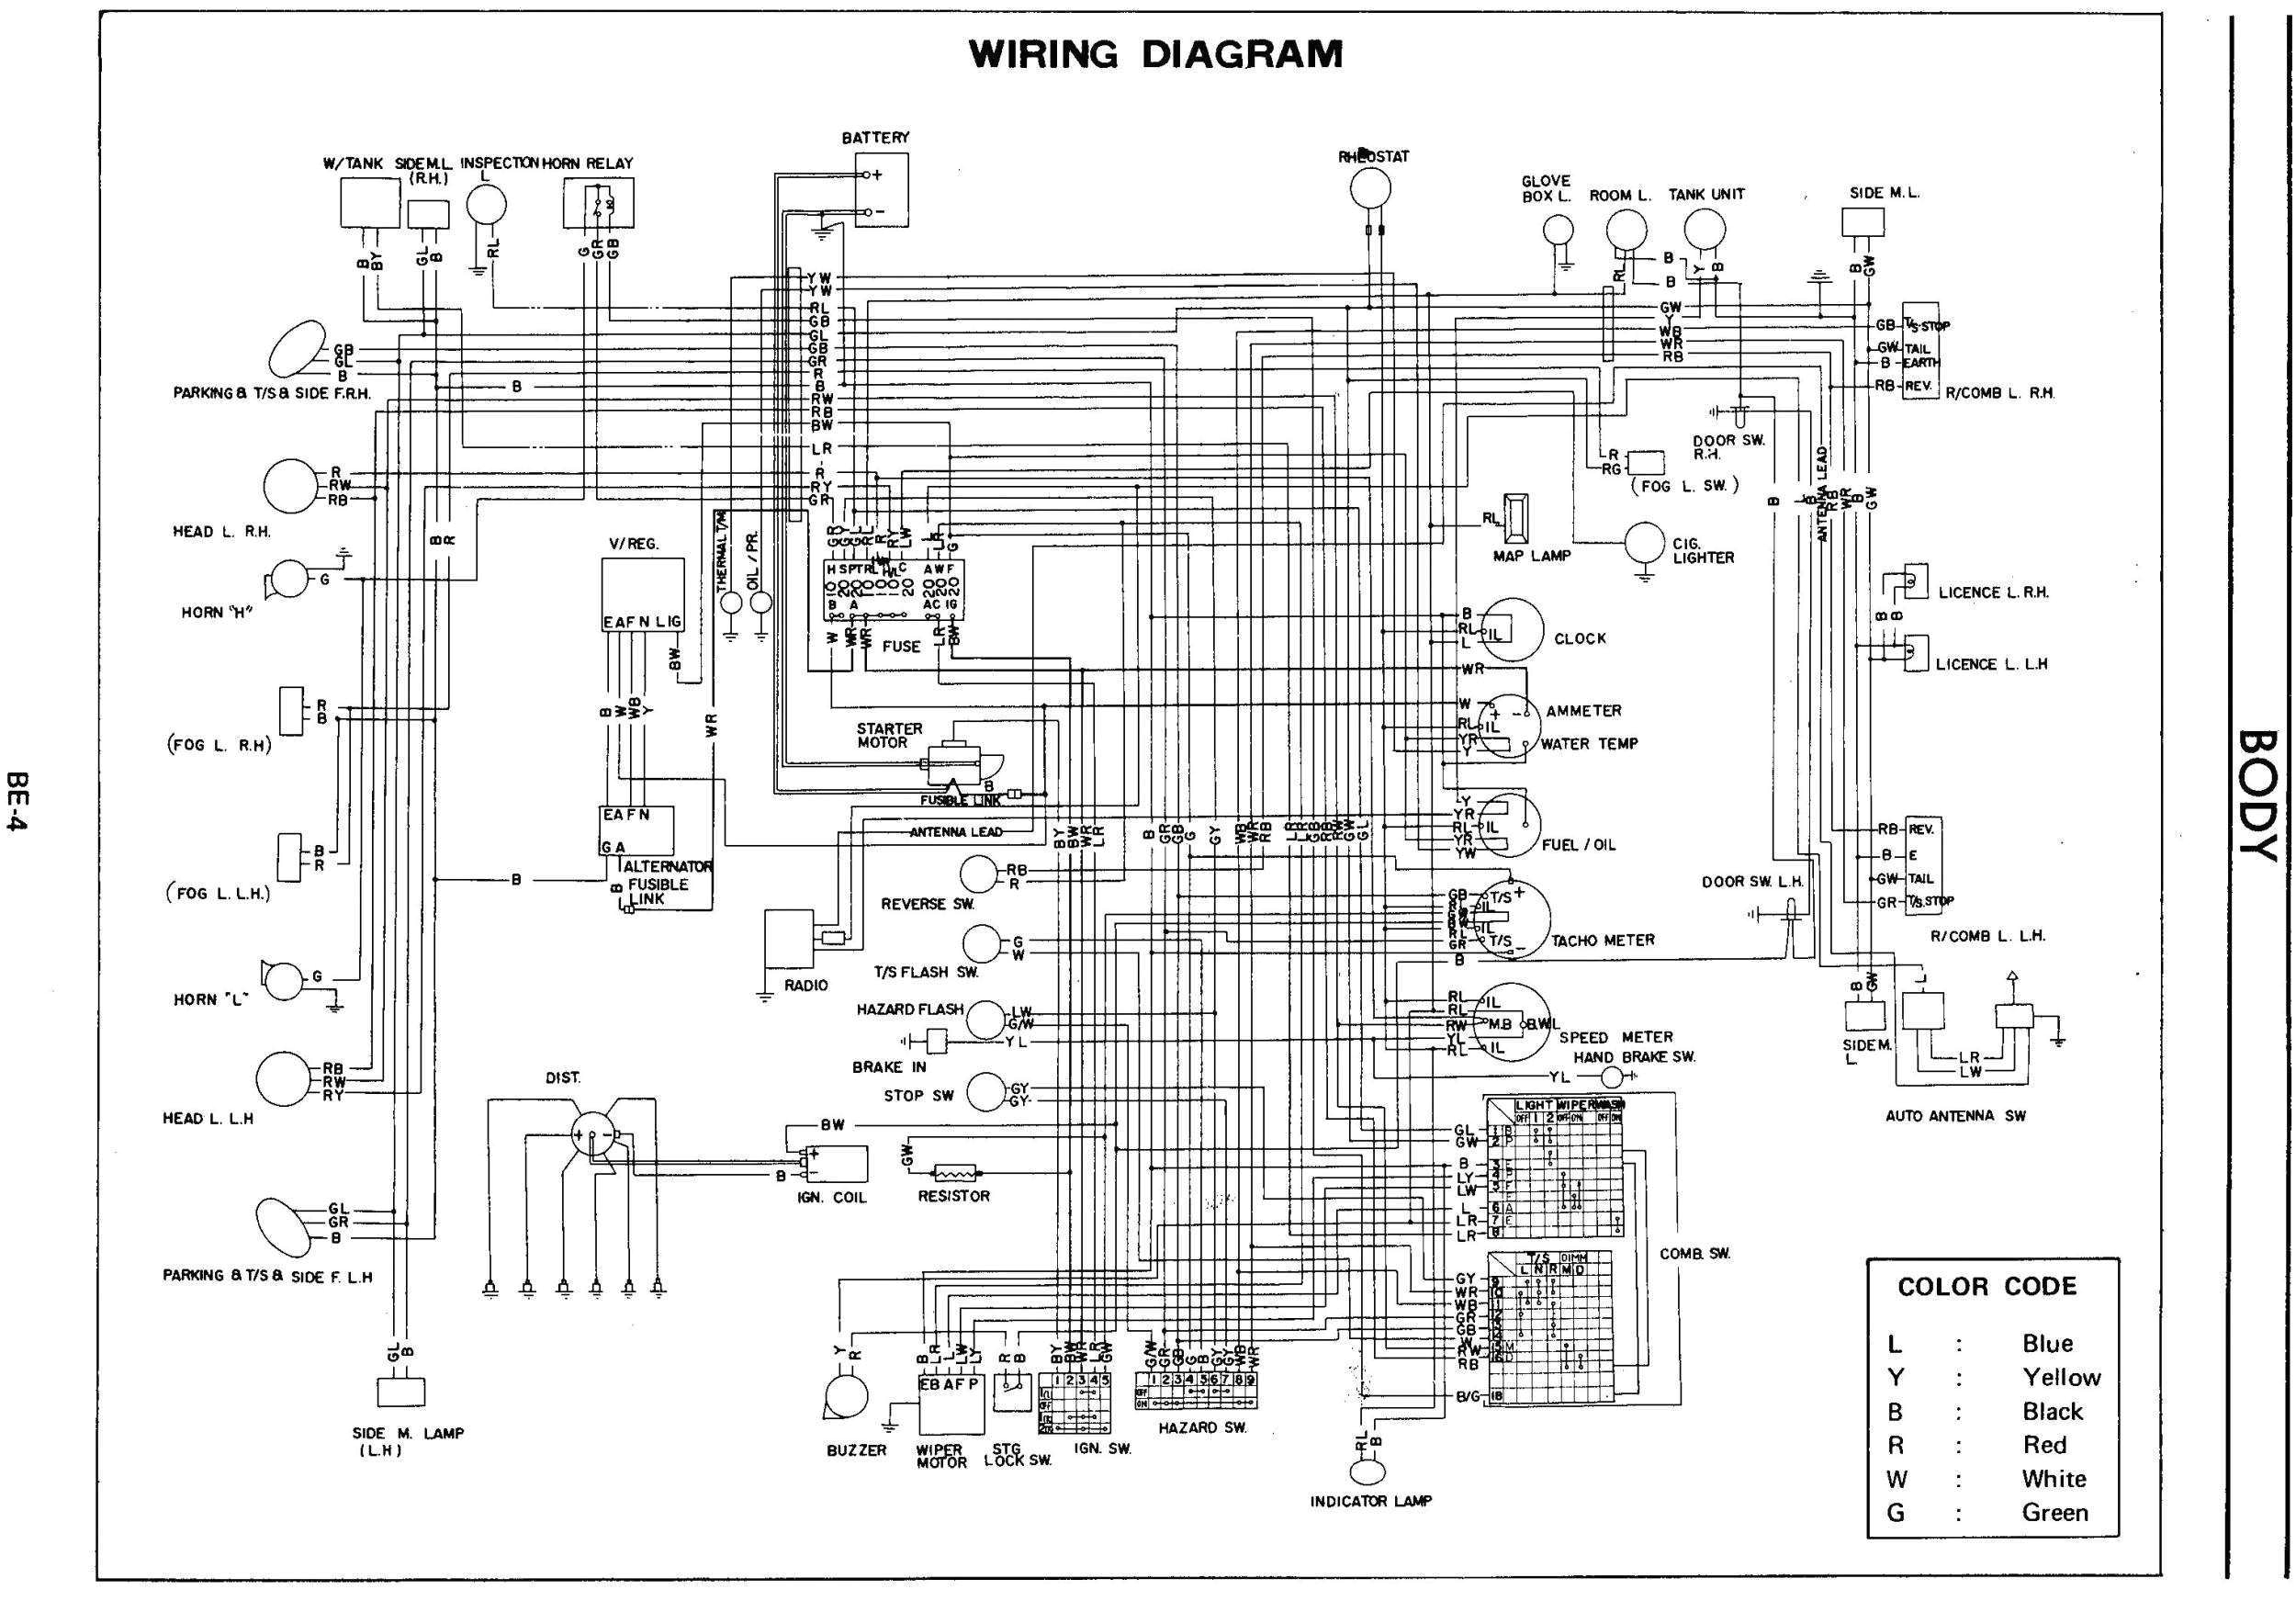 1989 mercedes 300e w124 engine diagram wiring diagram paper1990 mercedes 300e engine diagram wiring diagram used